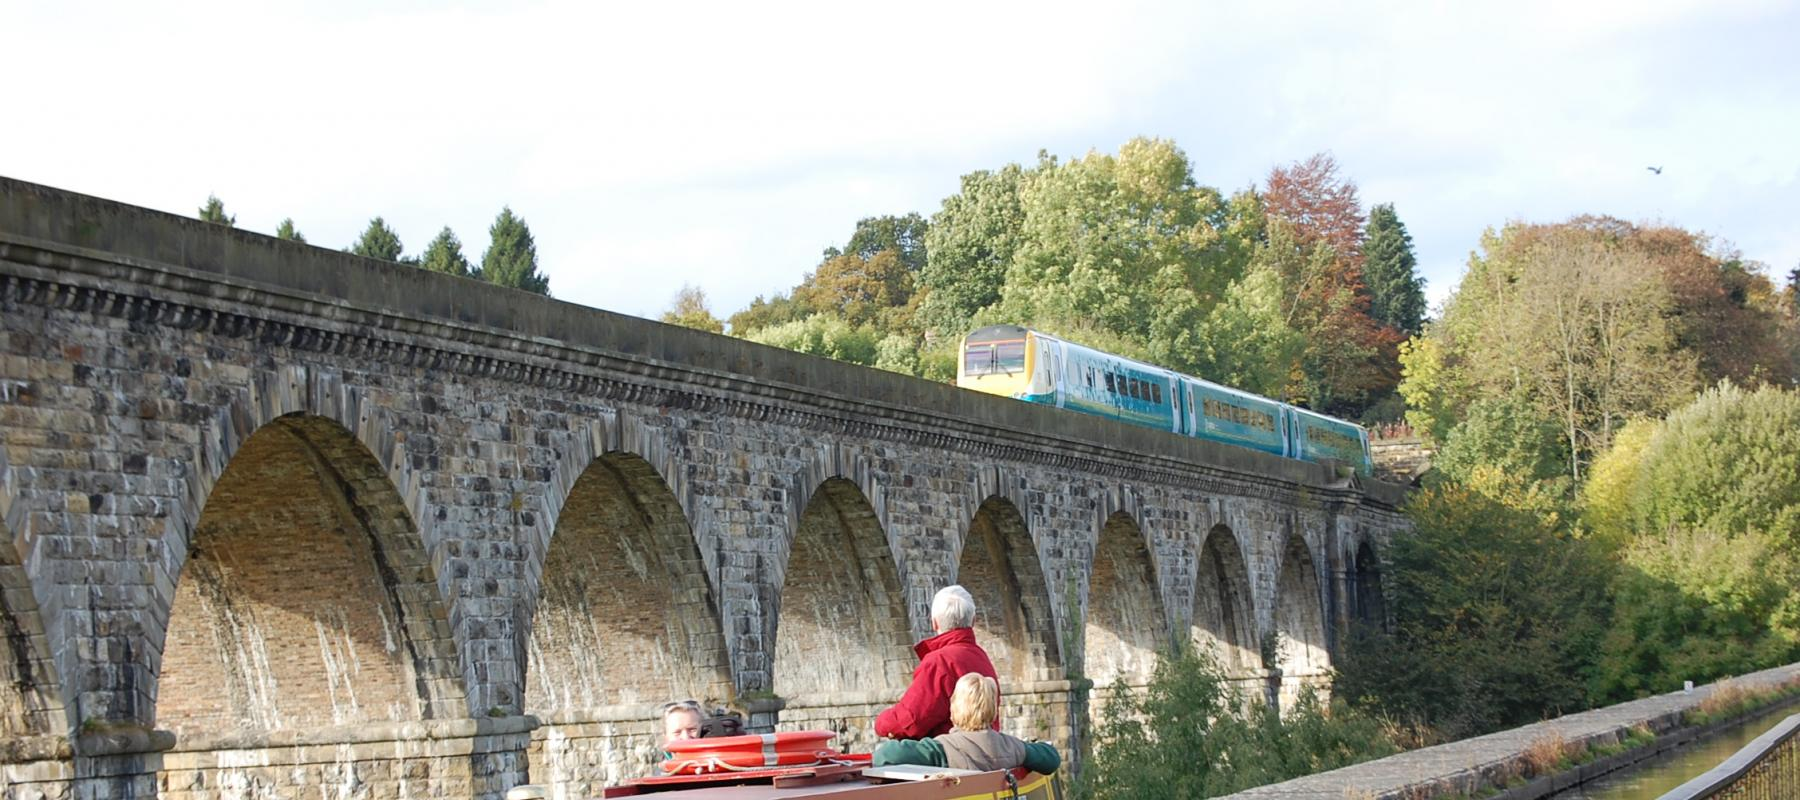 The Chirk Aqueduct and Viaduct on the Chester-Shrewsbury Line